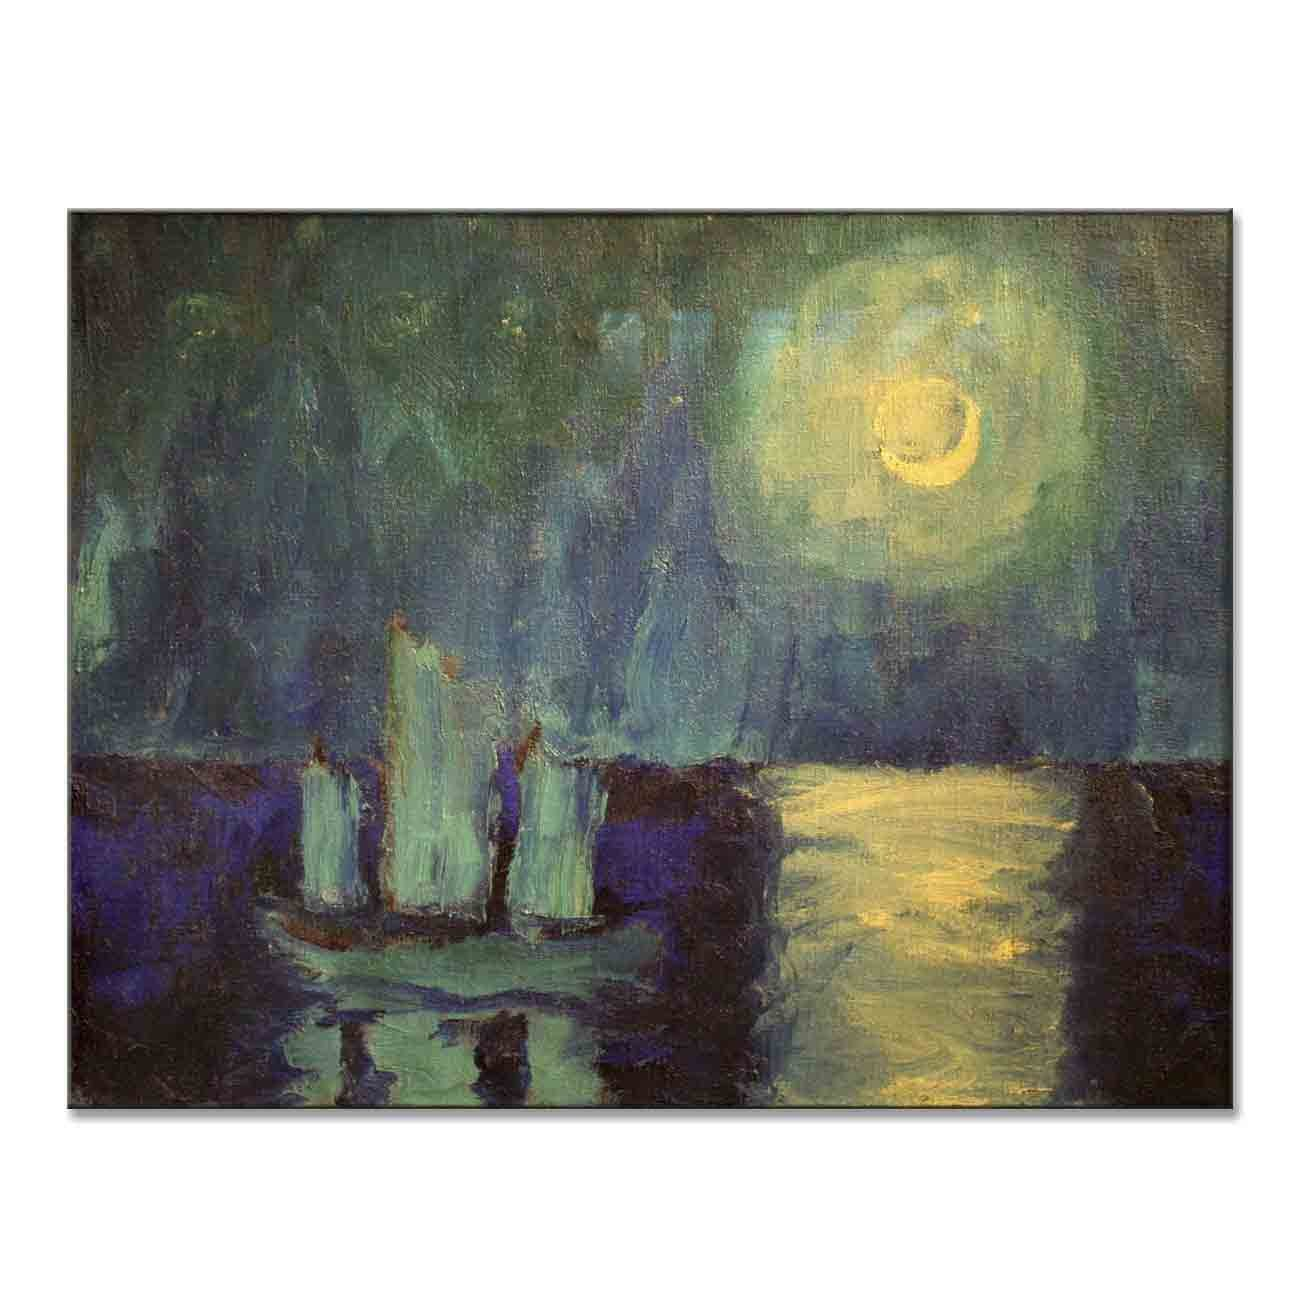 Emil Nolde Moonlit Night 1914 Original Moonlight Canvas Paintings Hand Painted Reproduction Unframed Tablet - 36X28 inch (91X71 cm) for Living Room Bedroom Dining Room Wall Decor To DIY Frame by Neron Art (Image #1)